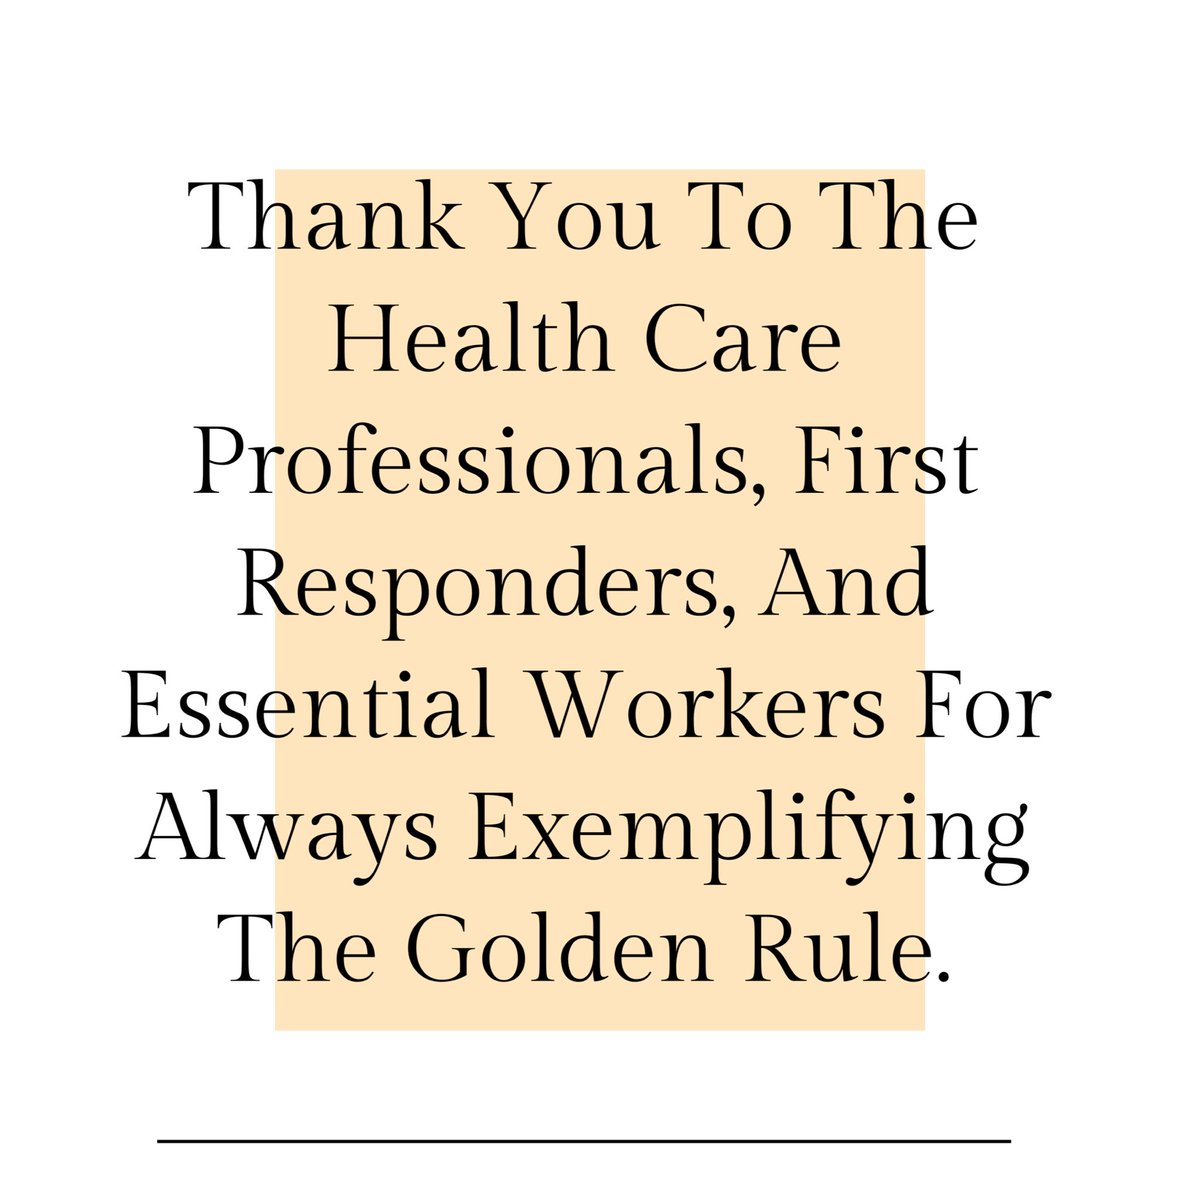 A huge THANK YOU to all of the health care professionals, first responders, and essential workers! We appreciate you!!   #attitudeofgratitude #gratefulthankfulblessed #gratefulmindset #healthcareworkers #essentialworkers #firstresponders #covidpic.twitter.com/A4v32qFMWD